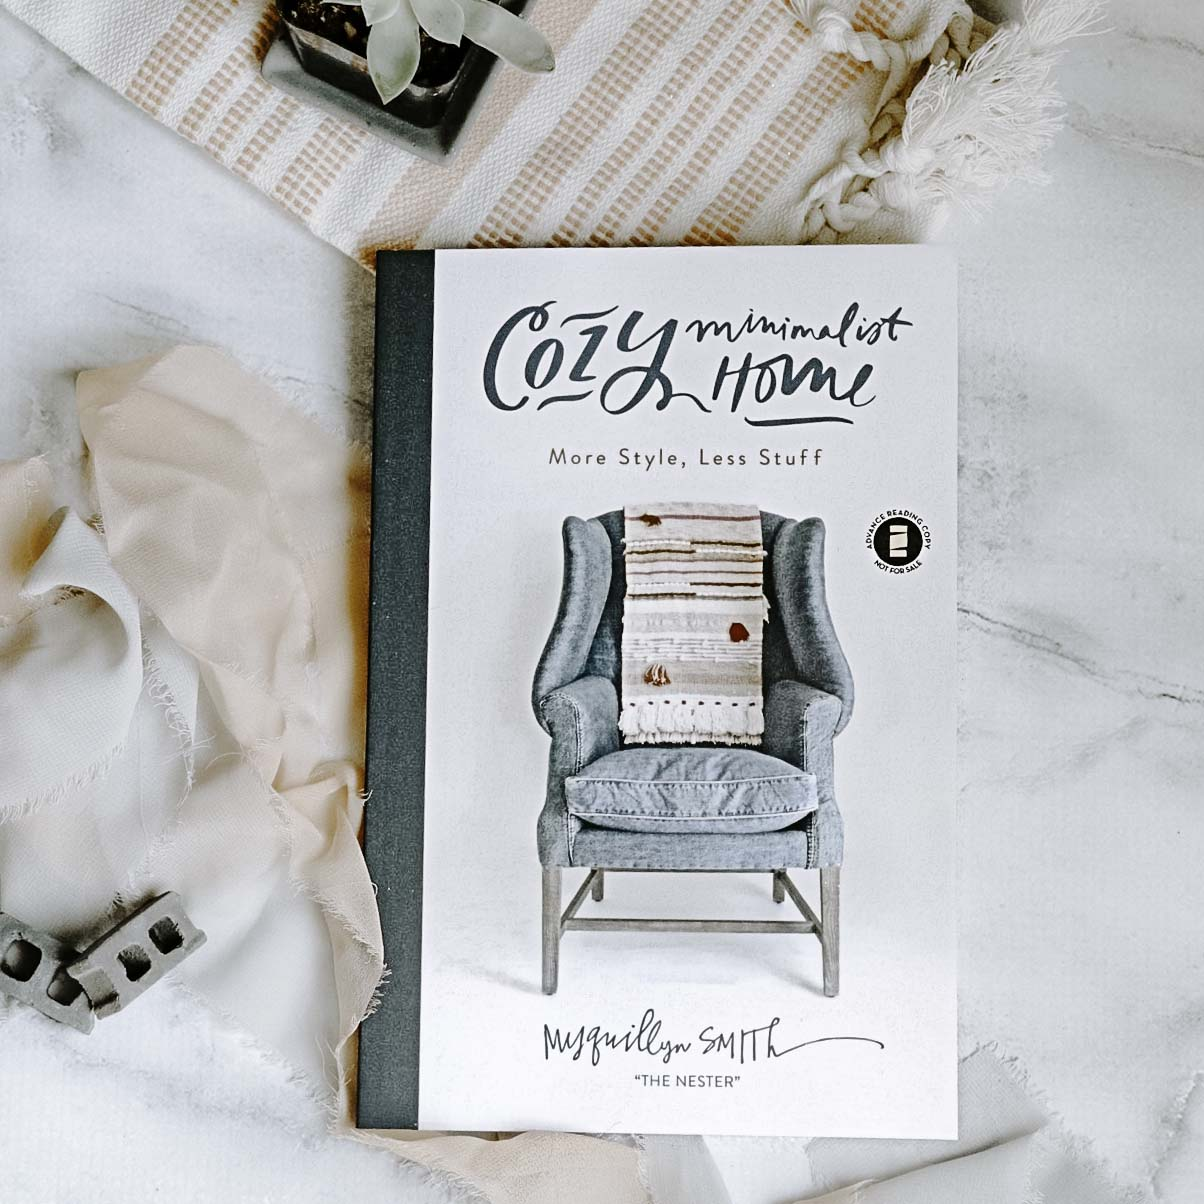 Image result for Cozy Minimalist Home book